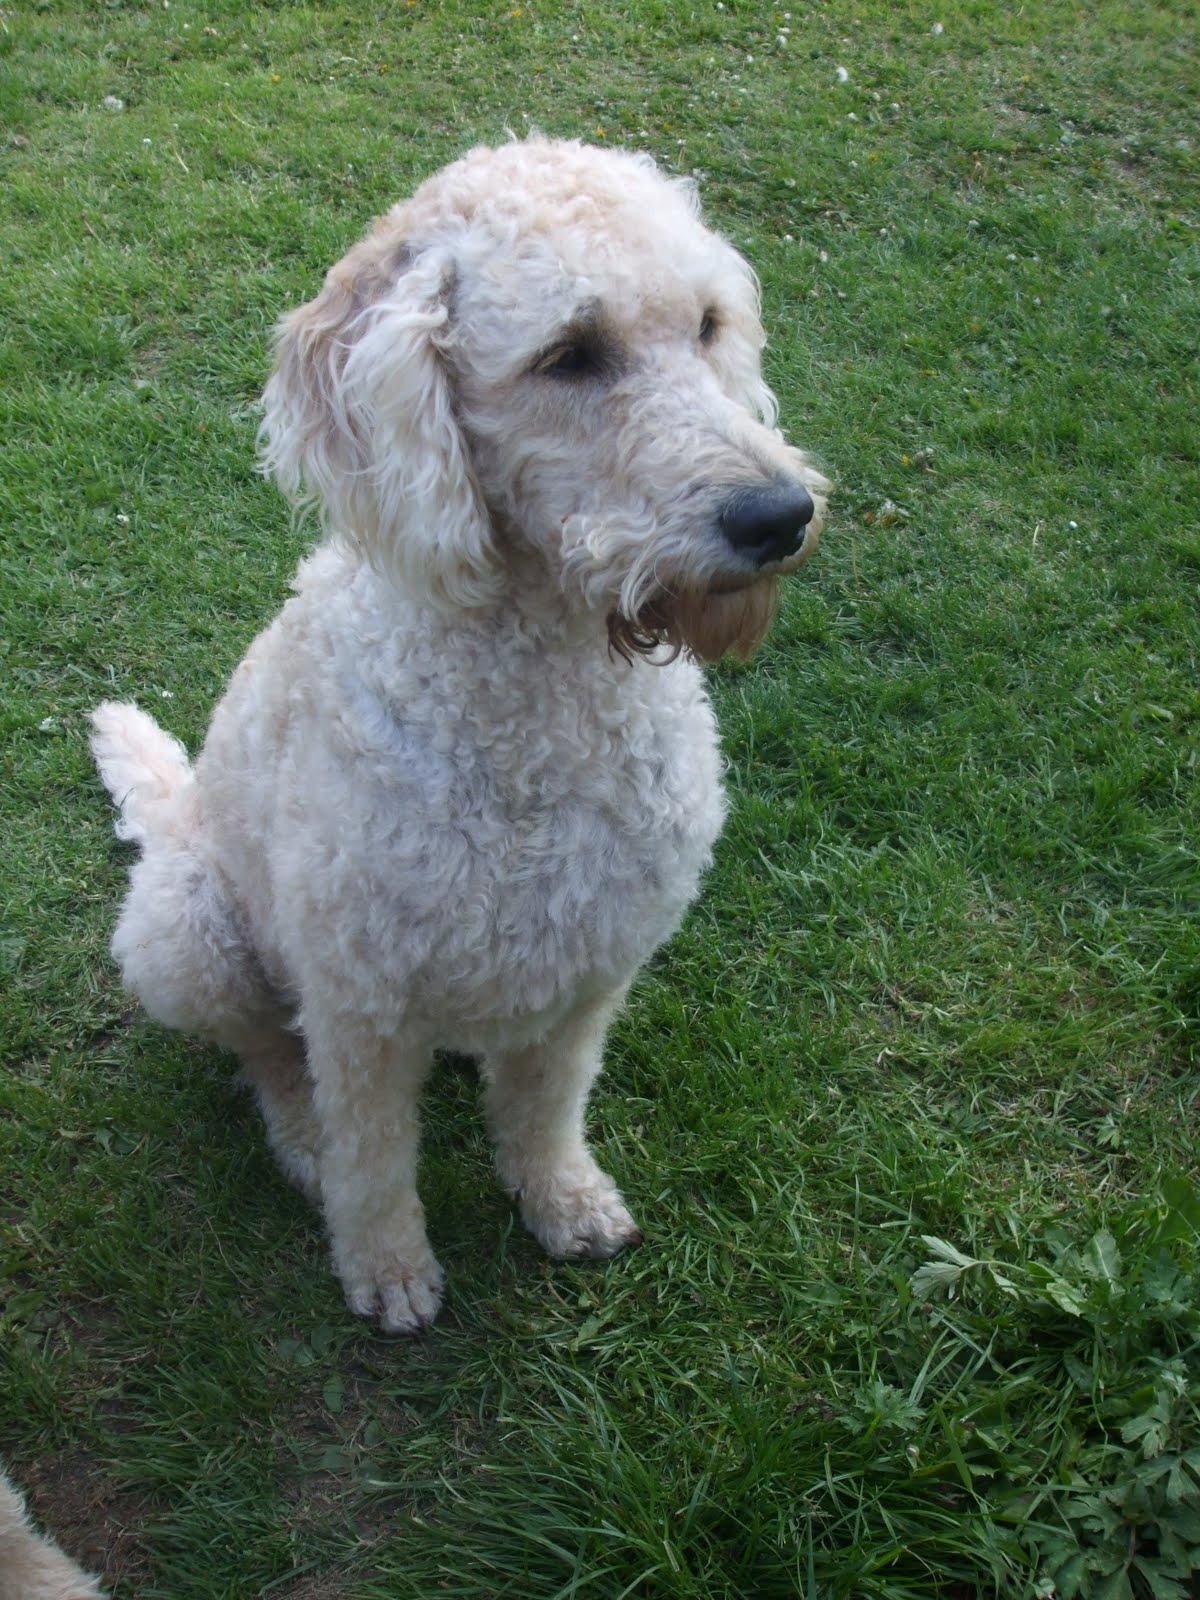 Pictures of Labradoodle Haircuts http://macthedoodle.blogspot.com/2010/05/haircut.html